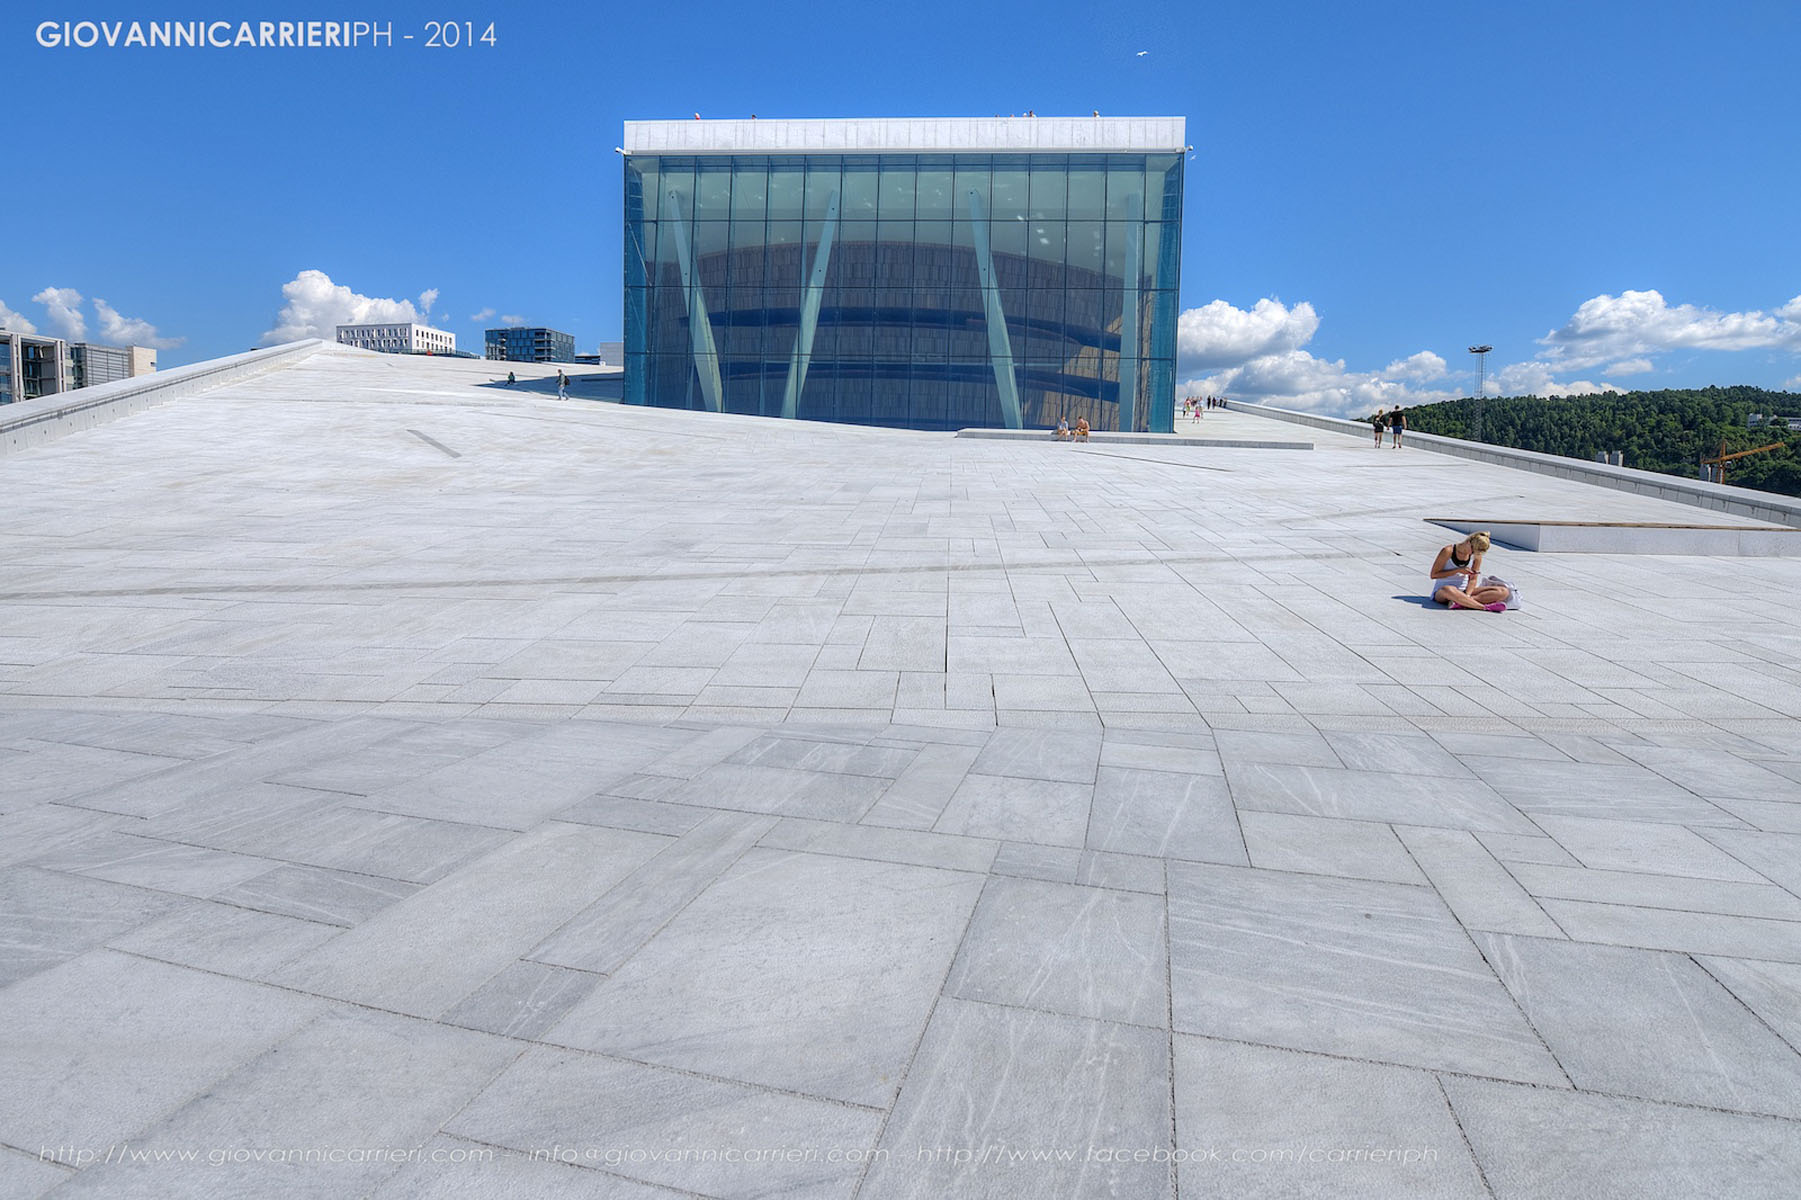 Front view of the Opera House in Oslo